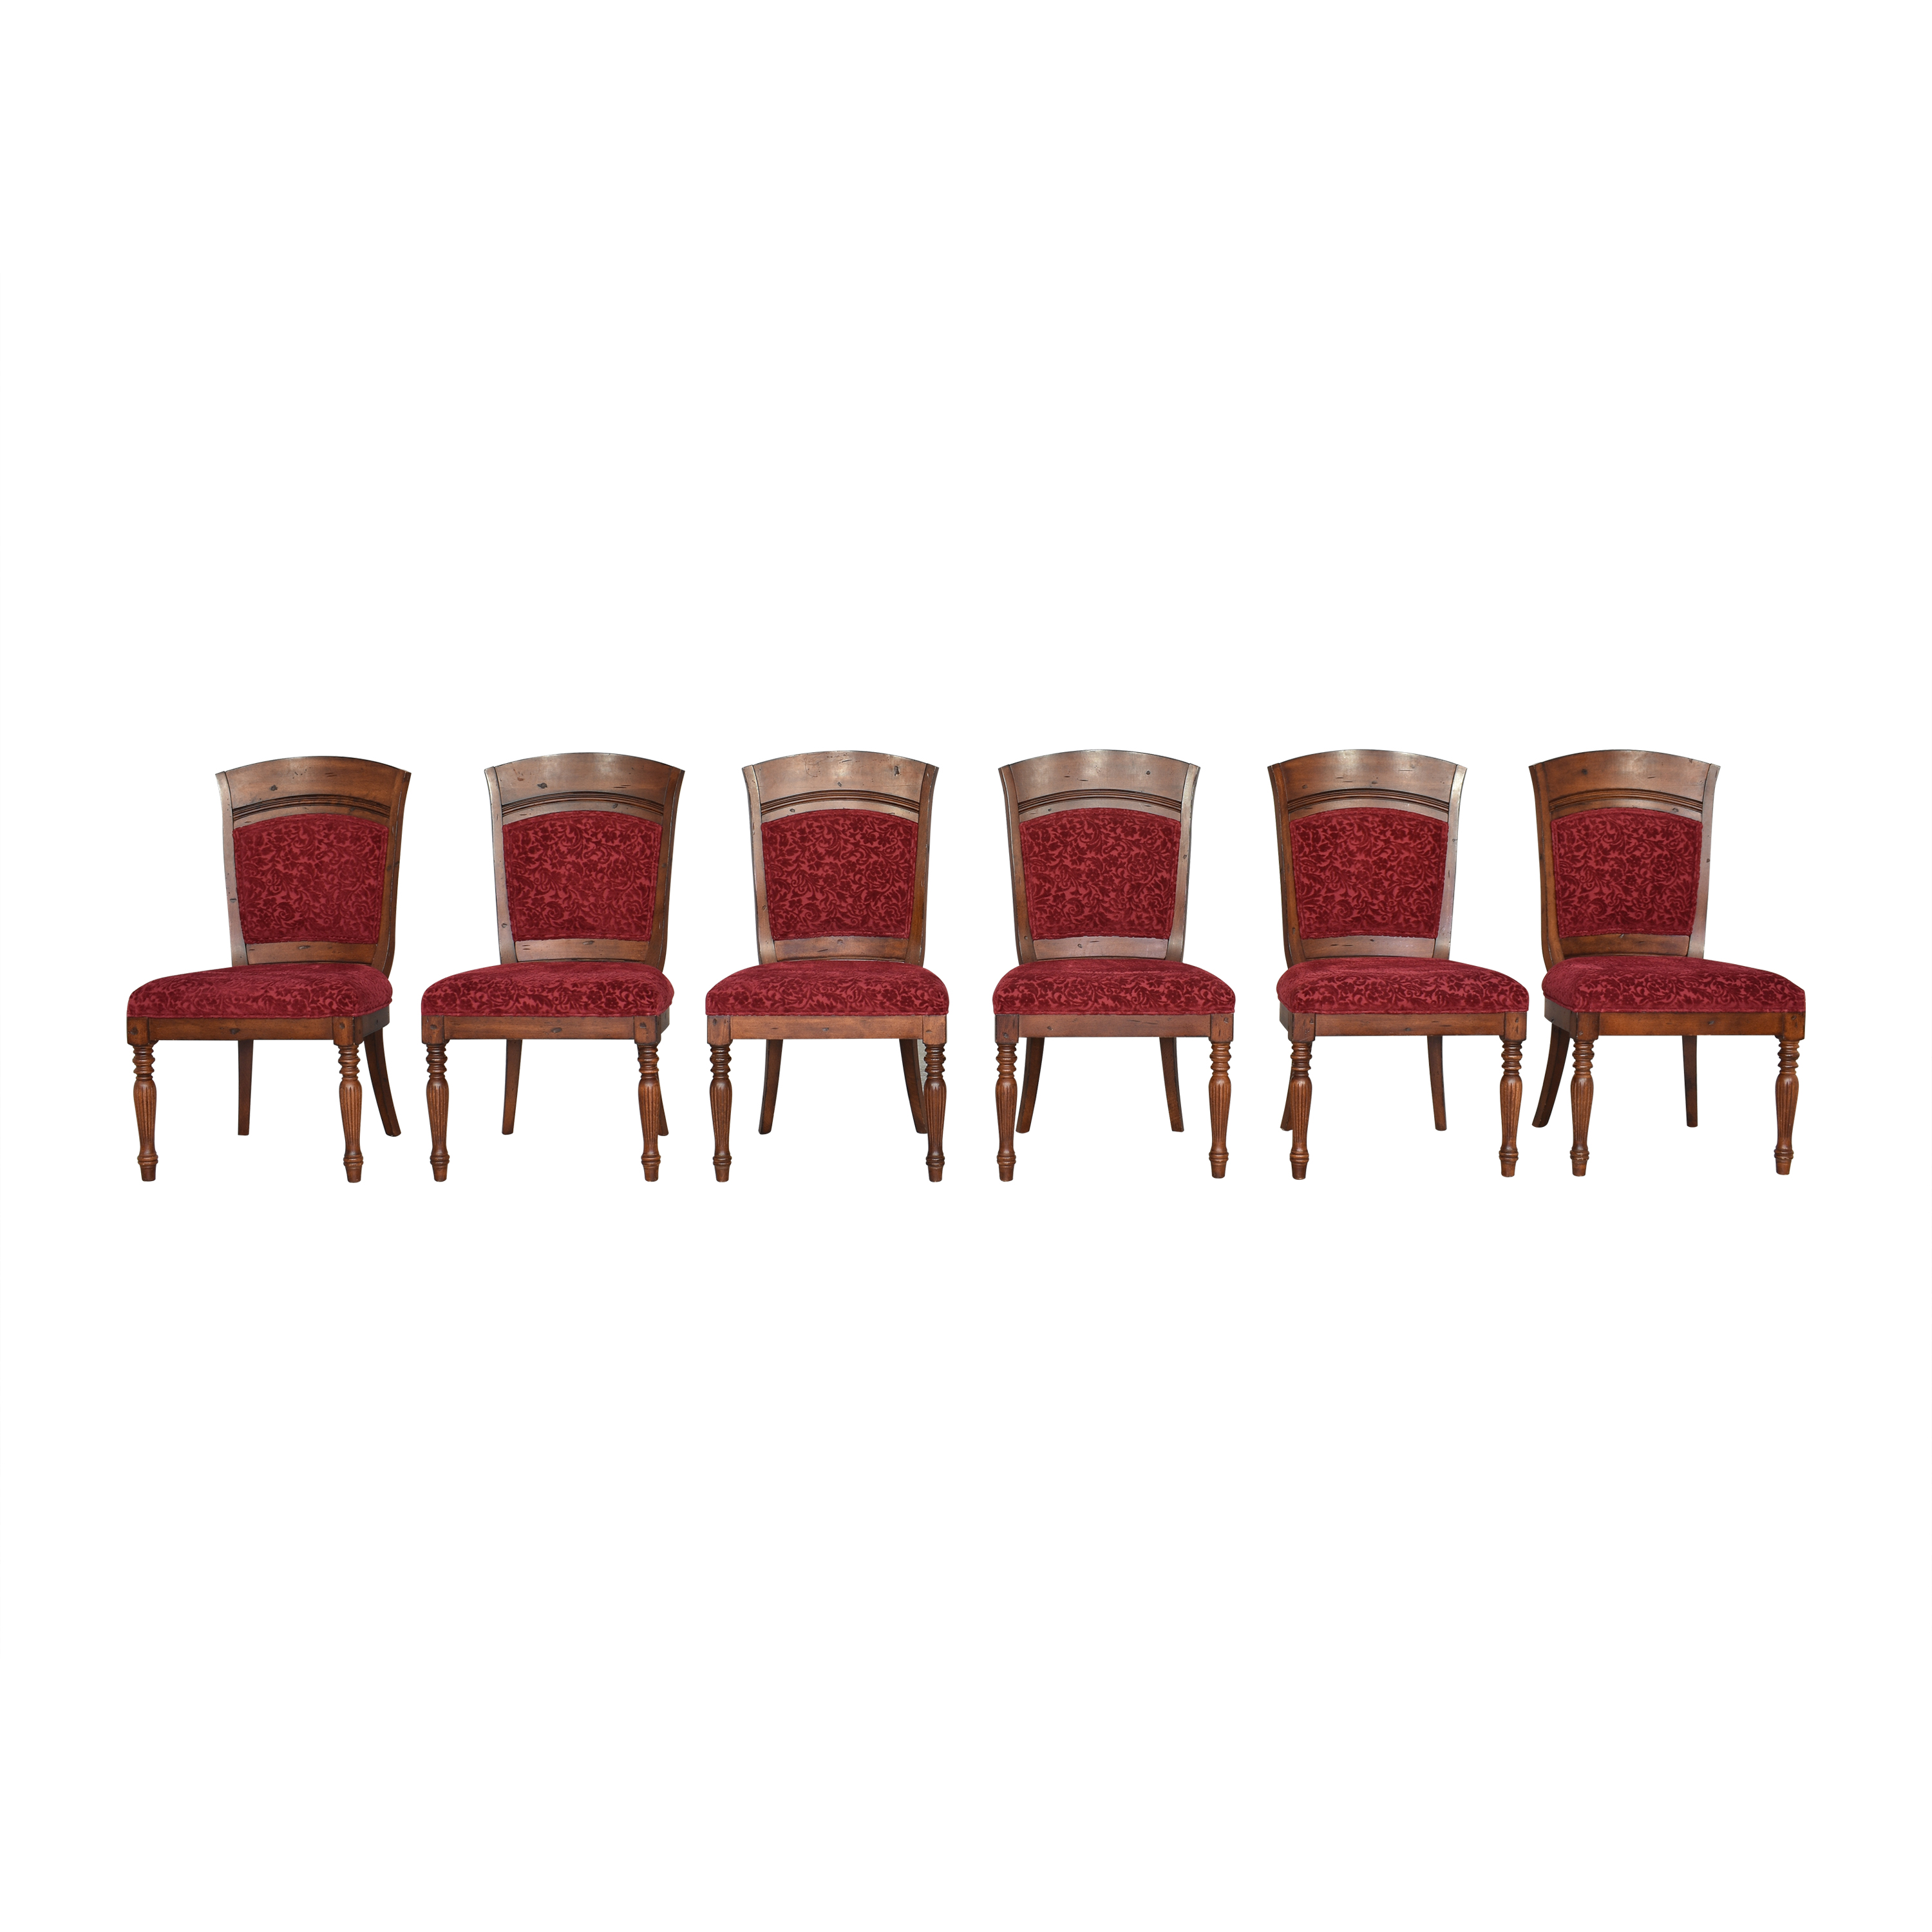 Harden Harden Dining Side Chairs used